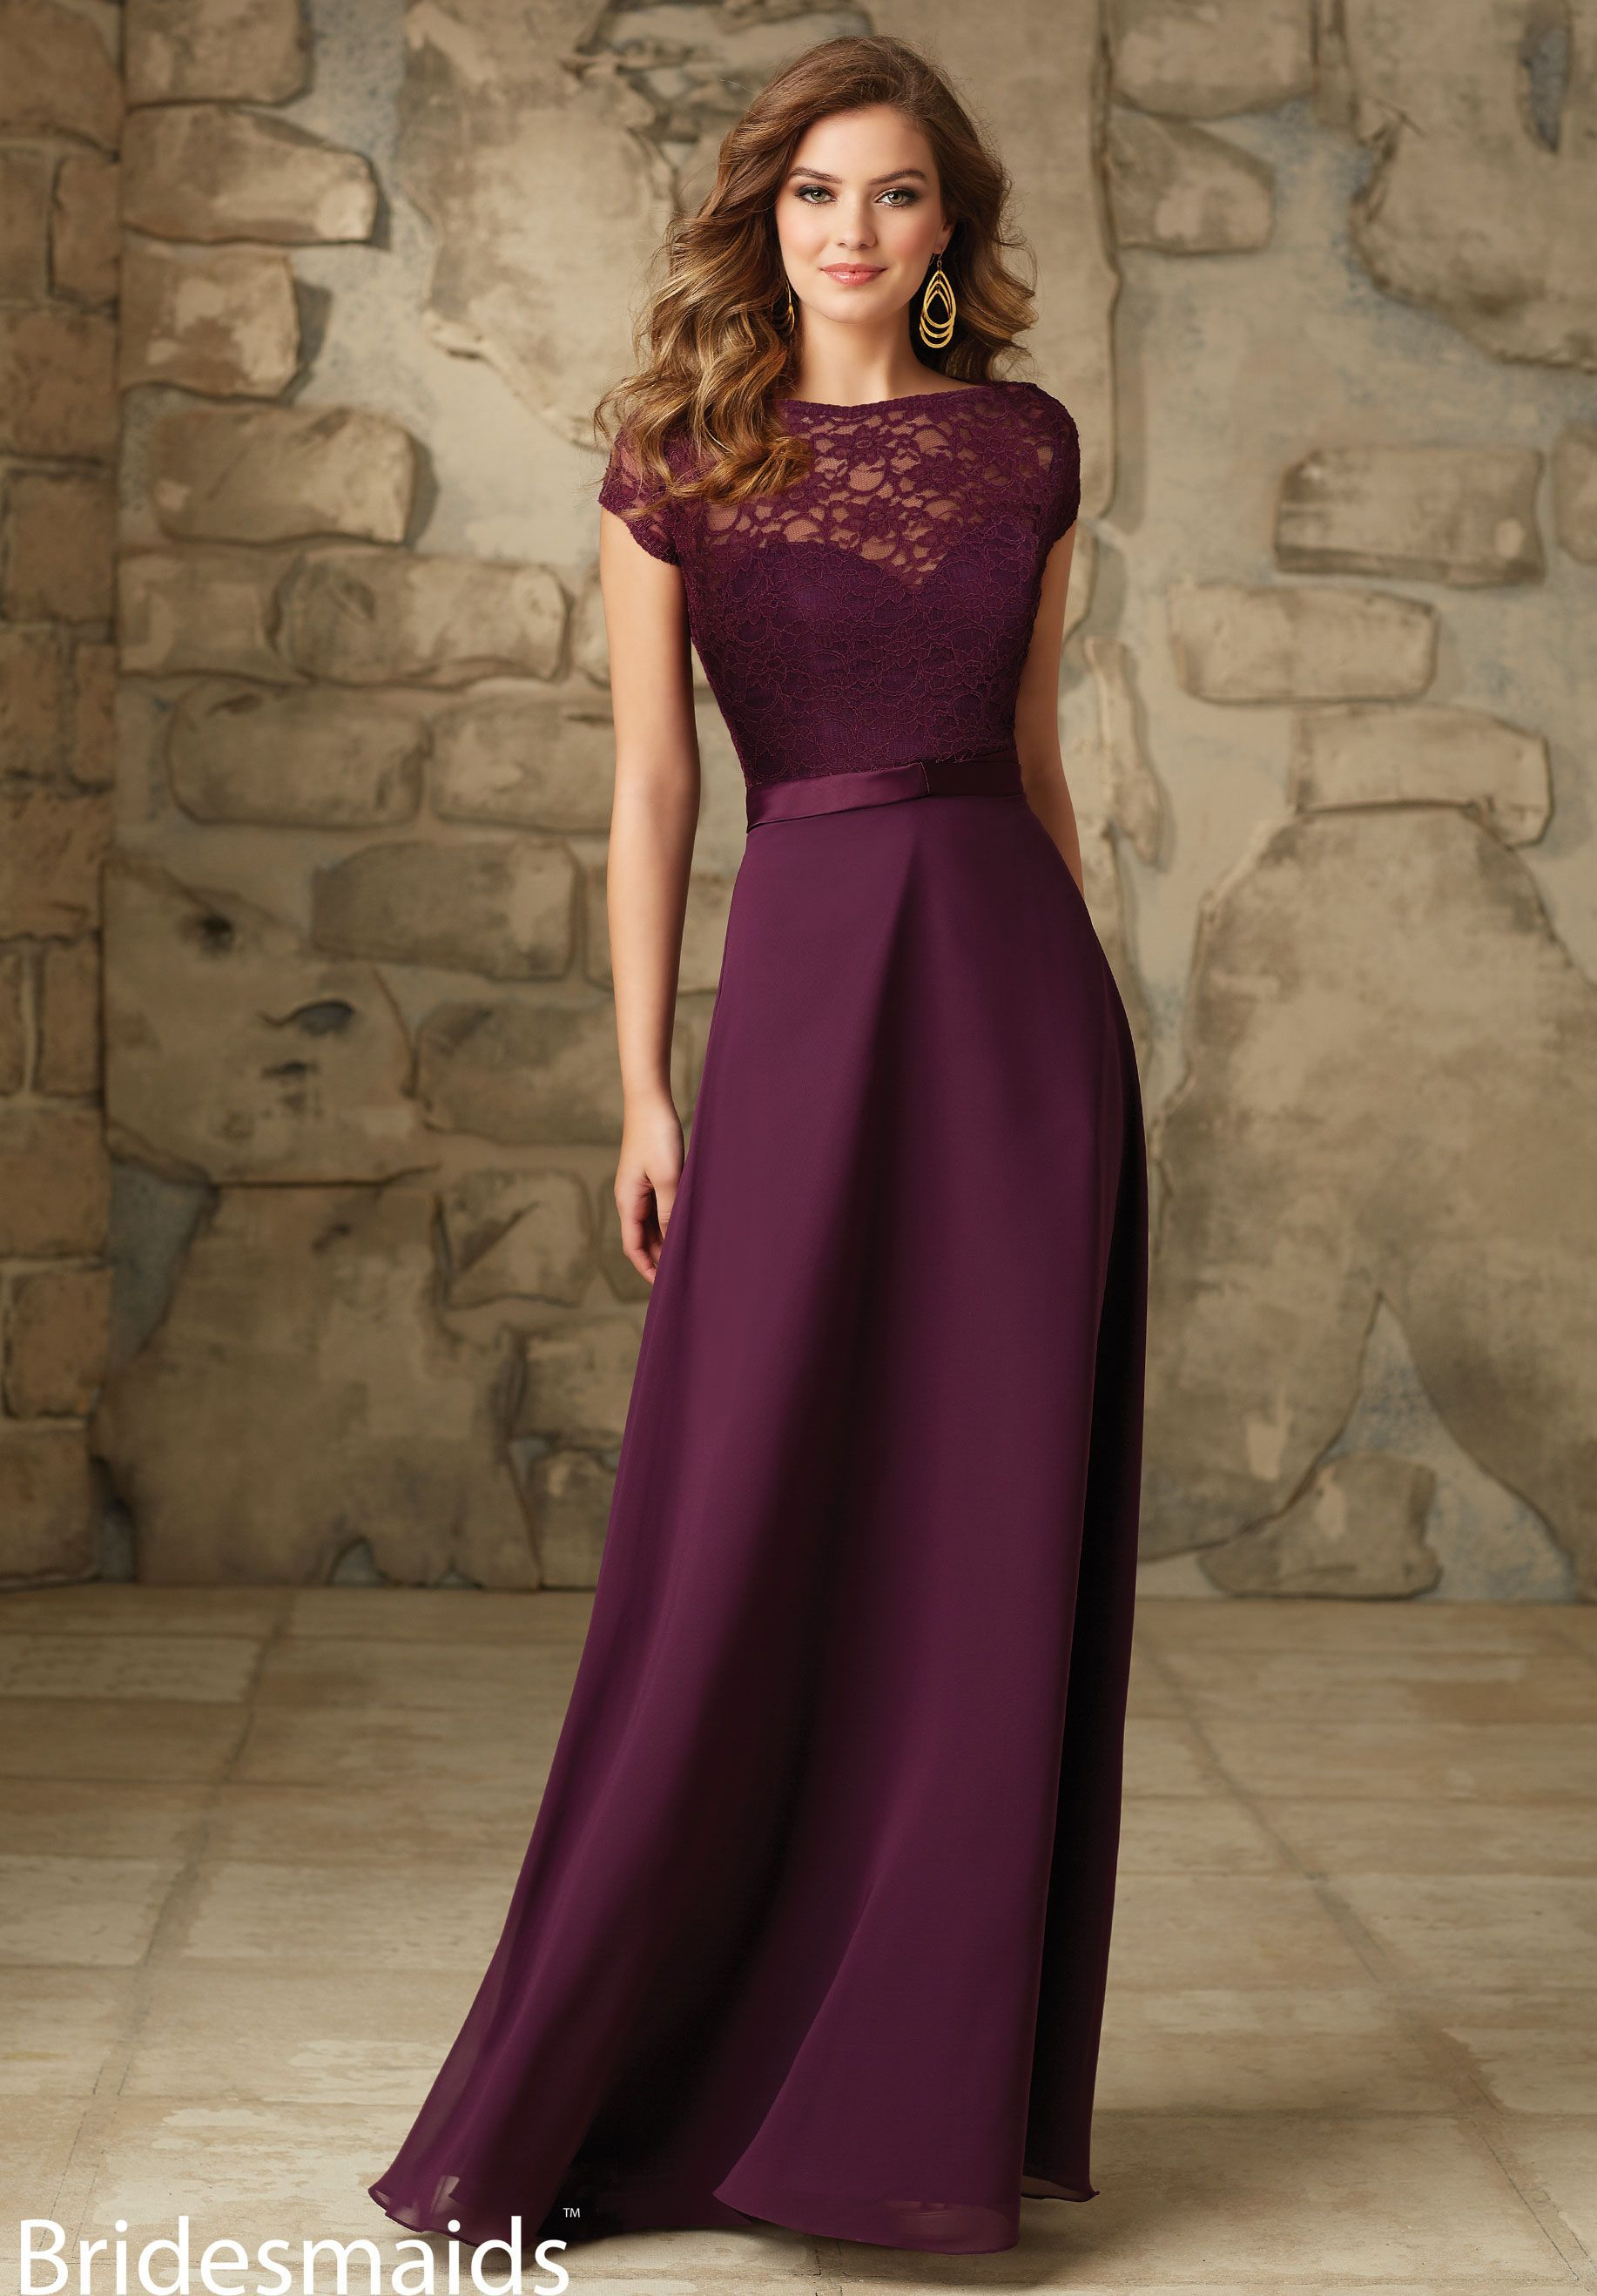 this dress only comes in wine color not raspberry